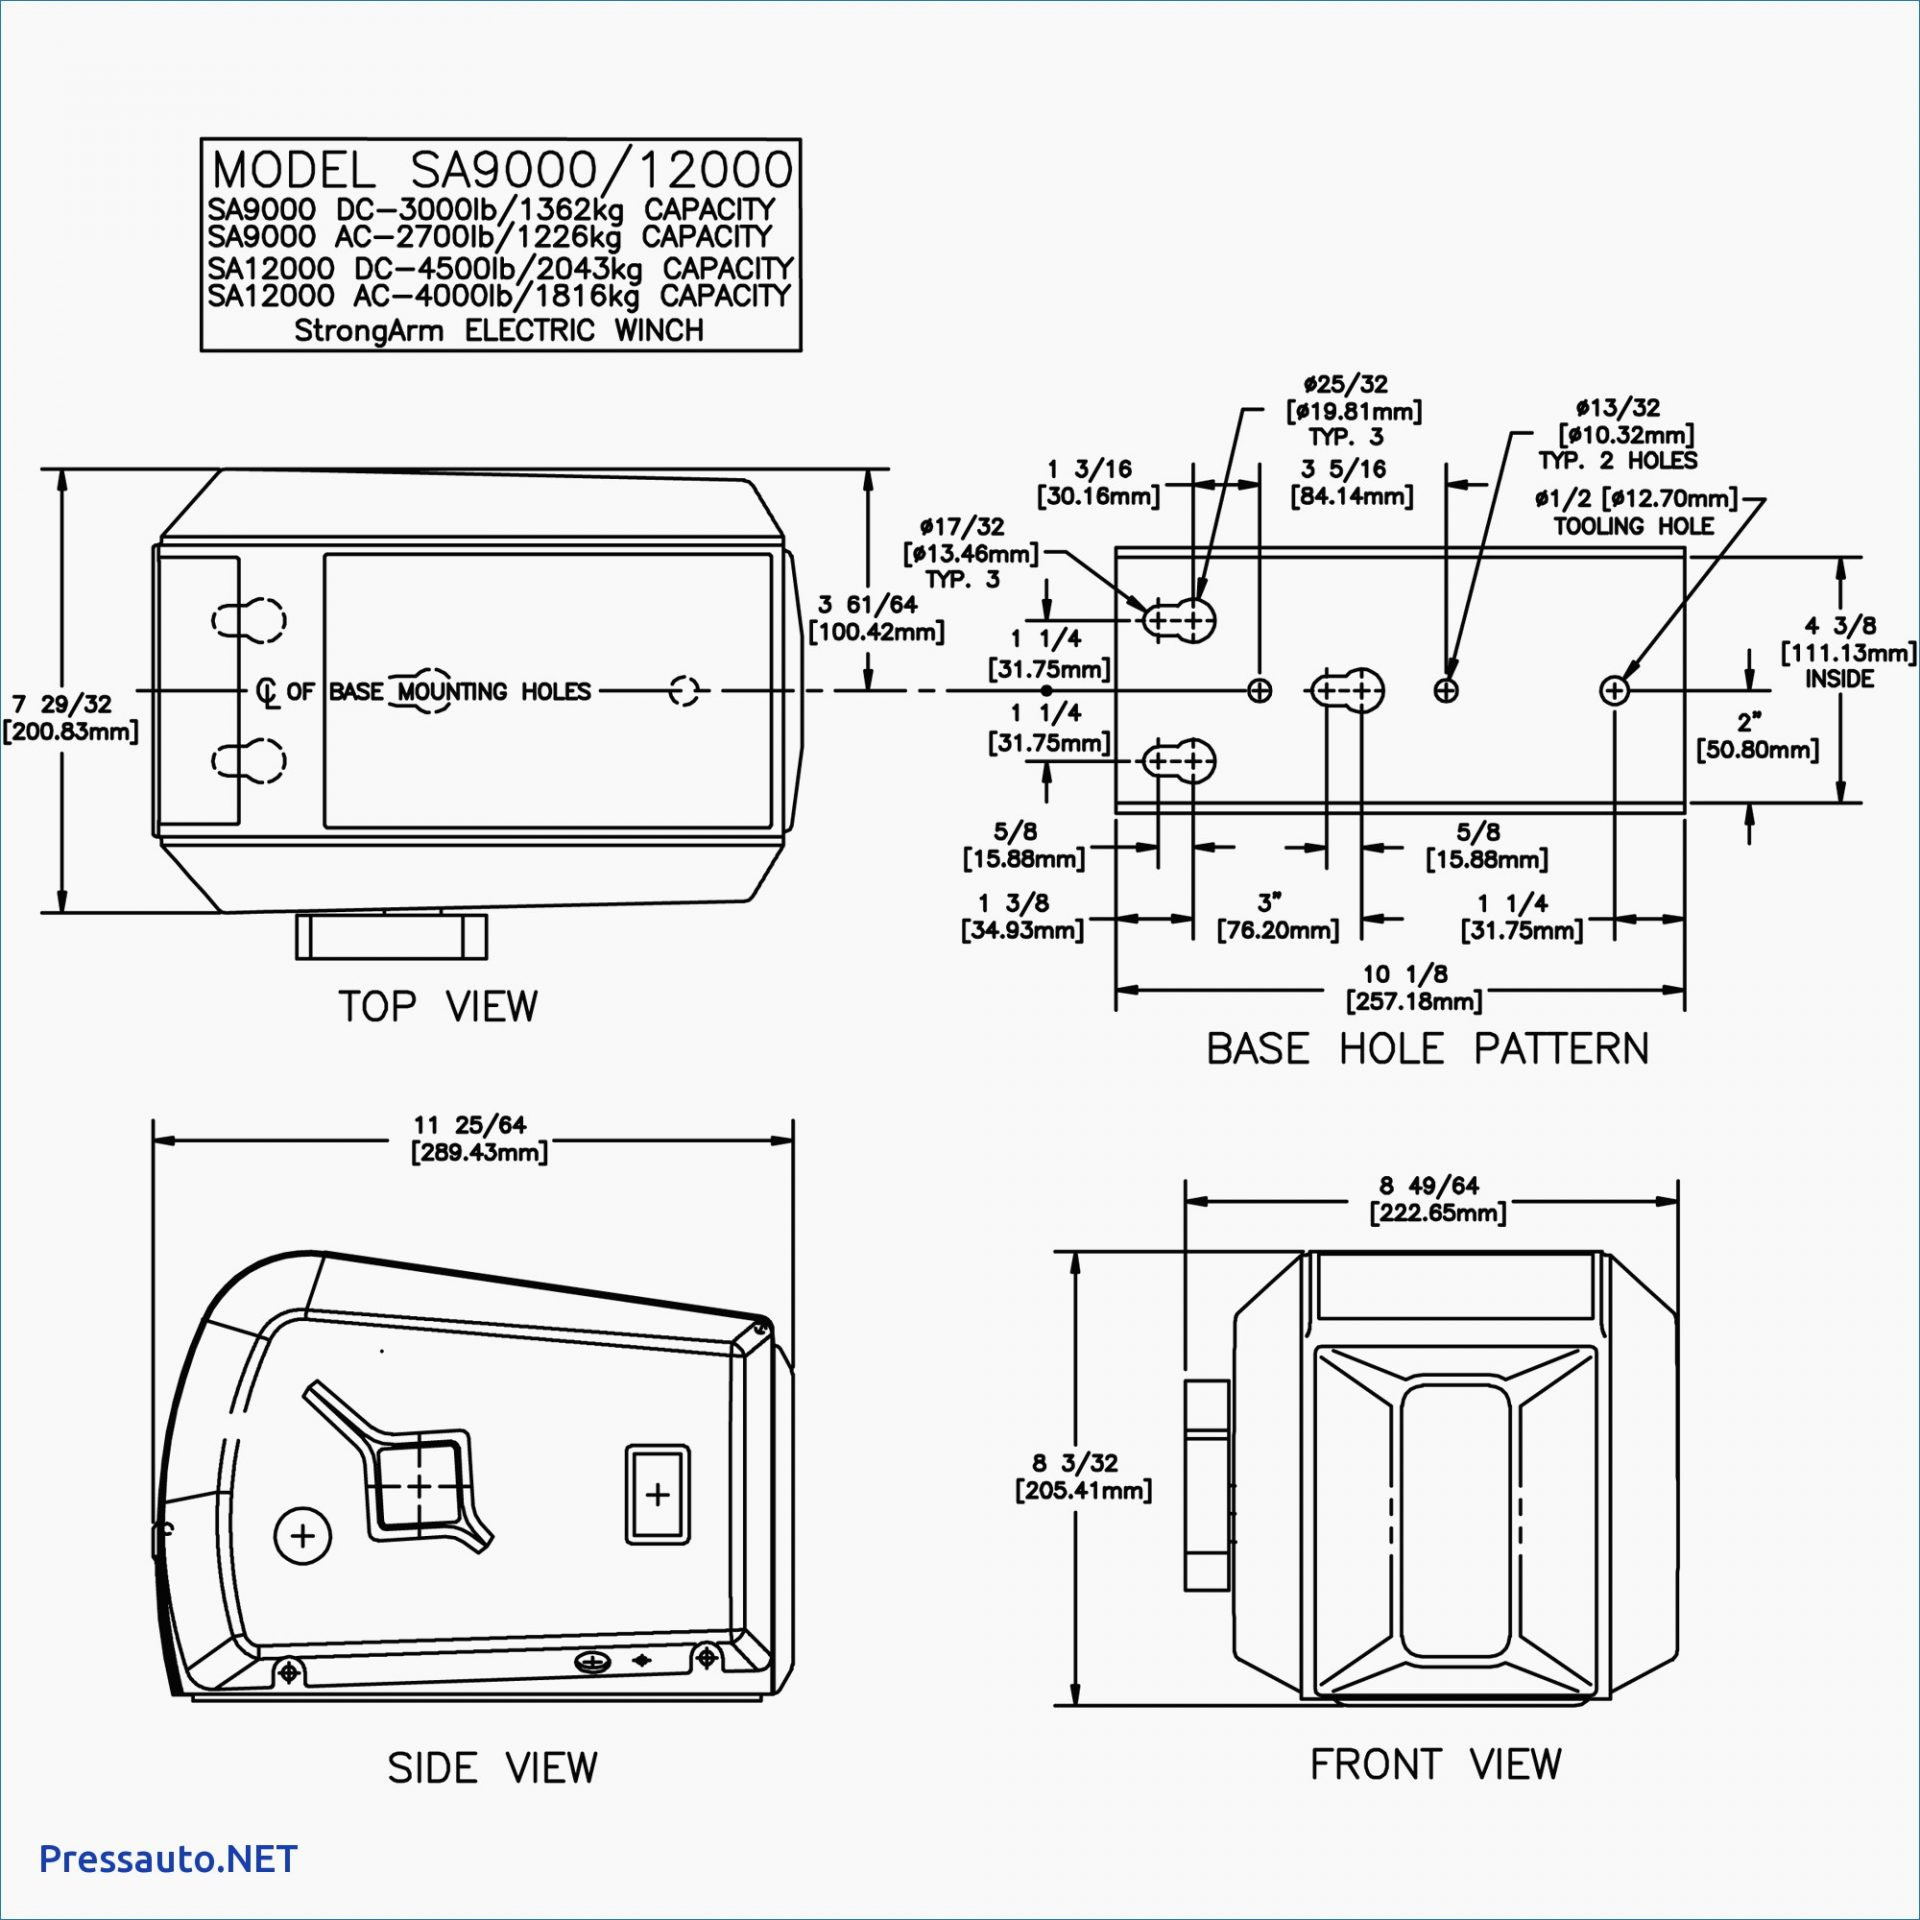 Wiring Diagram Pictures Detail: Name: winch wireless remote control ...